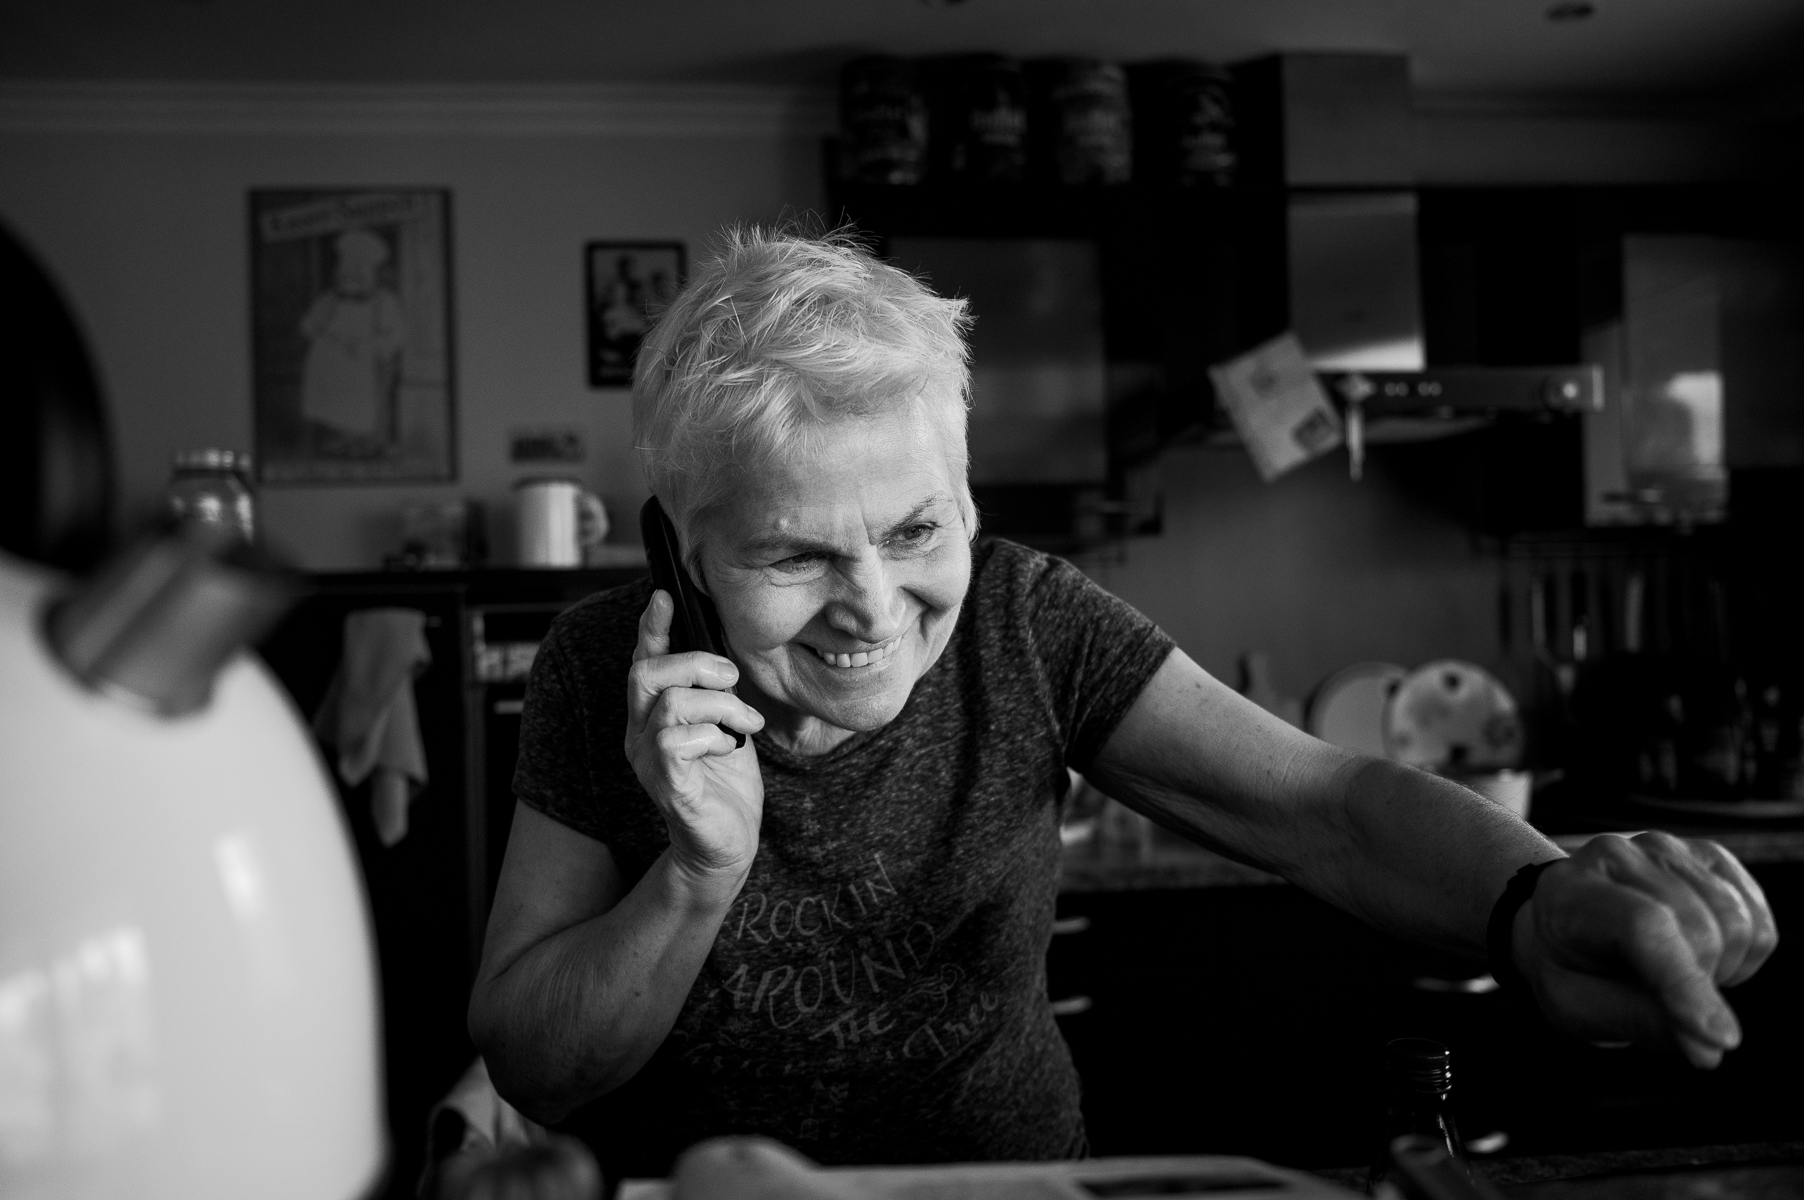 While emptying the dishwasher, mom talks with daughter Ann-Kristin, who lives 75 km away in Cologne, on the phone, an important activity to keep in touch not only but especially during stay-at-home orders. Oberhausen, Germany, March 15, 2020.